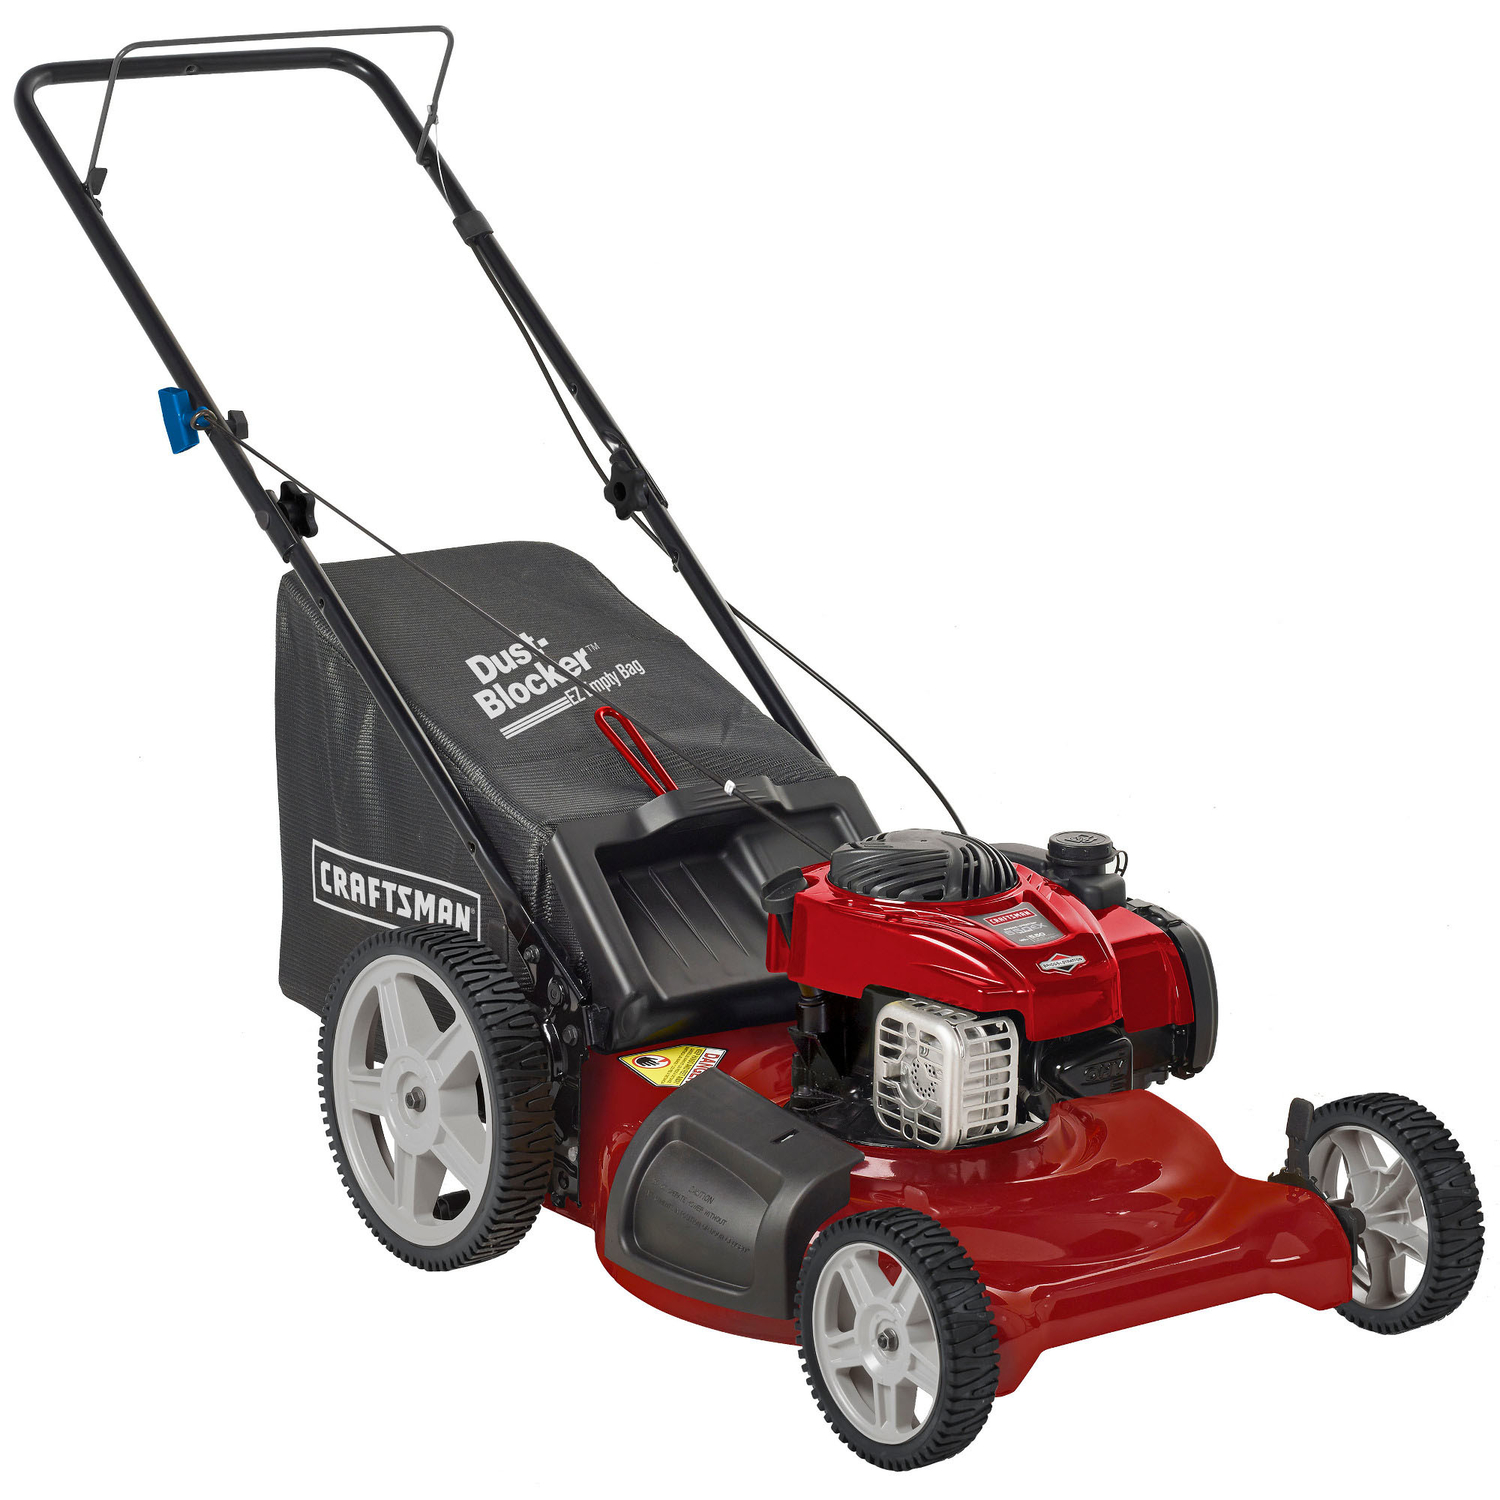 Ace Lawn Mower Wiring Diagram Explained Diagrams Craftsman 358 794742 21 In W 140 Cc Manual Push Mulching Capability Owners